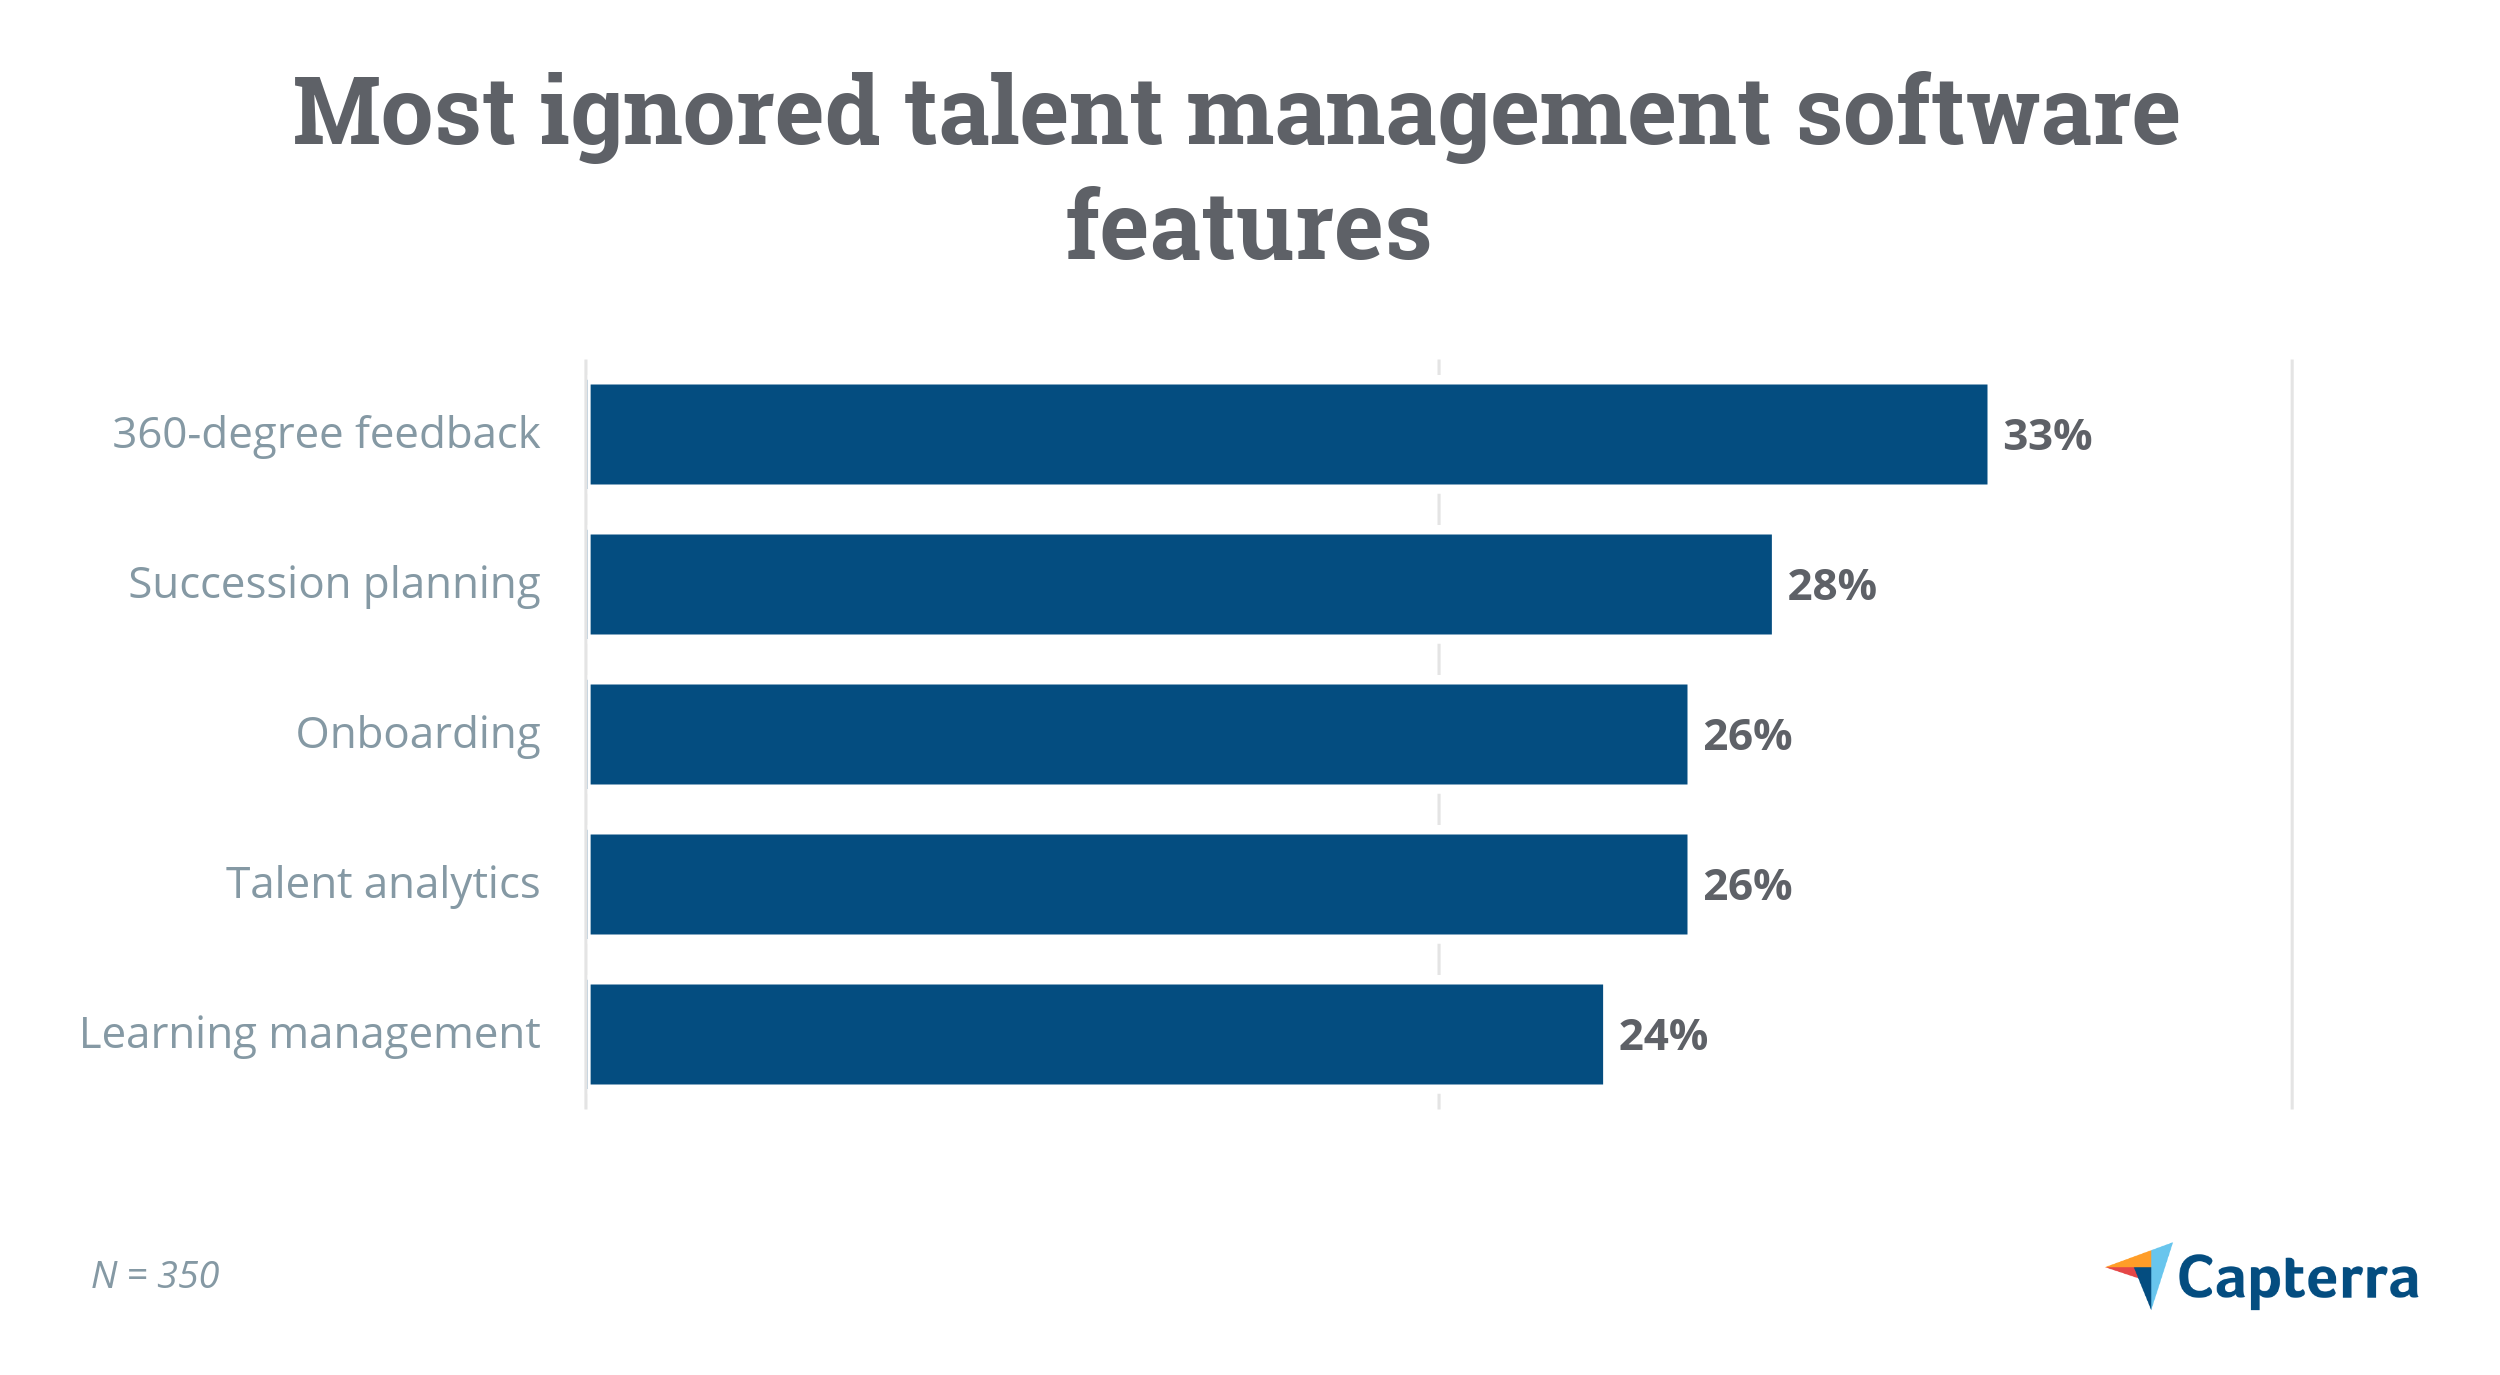 Most ignored talent management software features